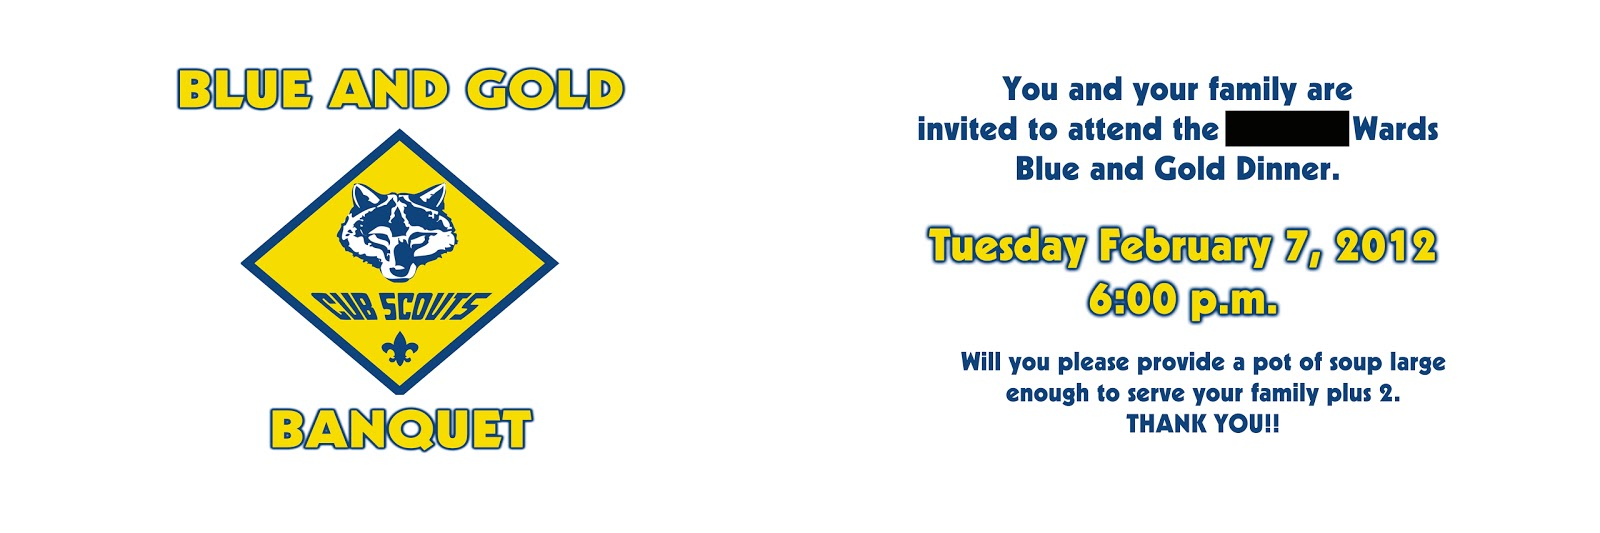 cub scout blue and gold program template - scout invitations utah party invitations ideas